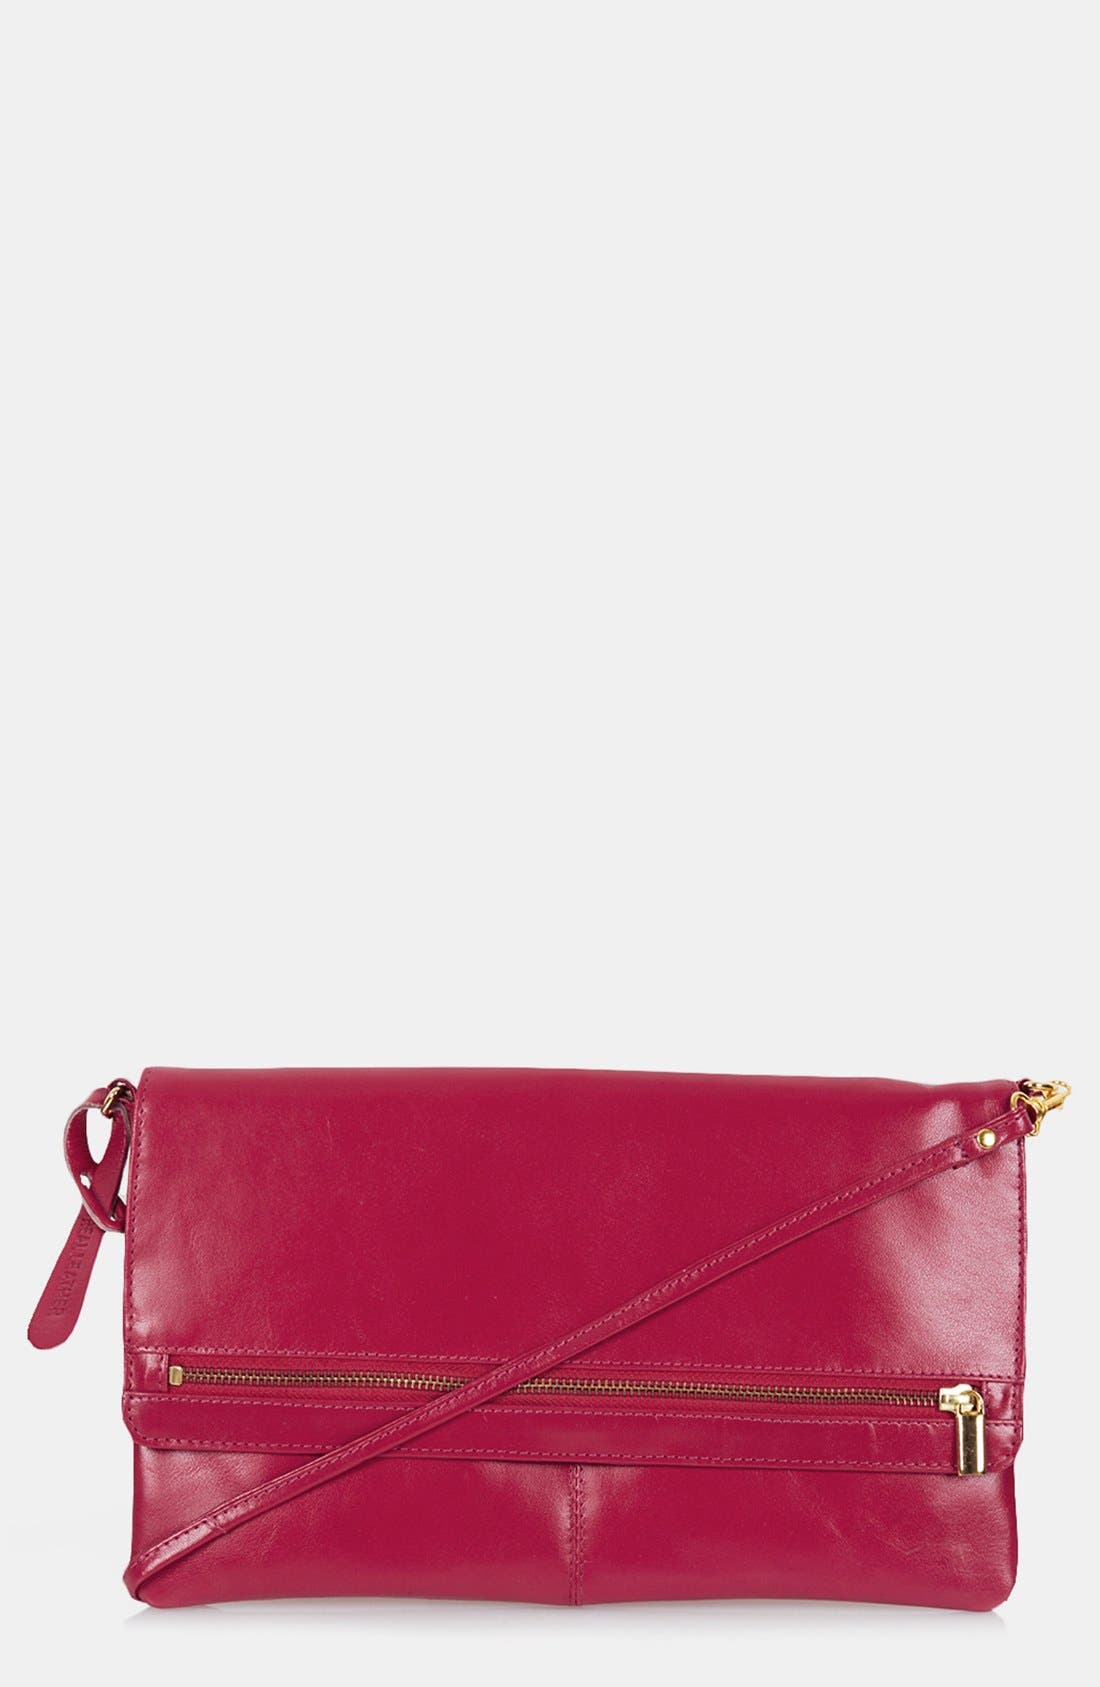 Main Image - Topshop Leather Foldover Leather Clutch